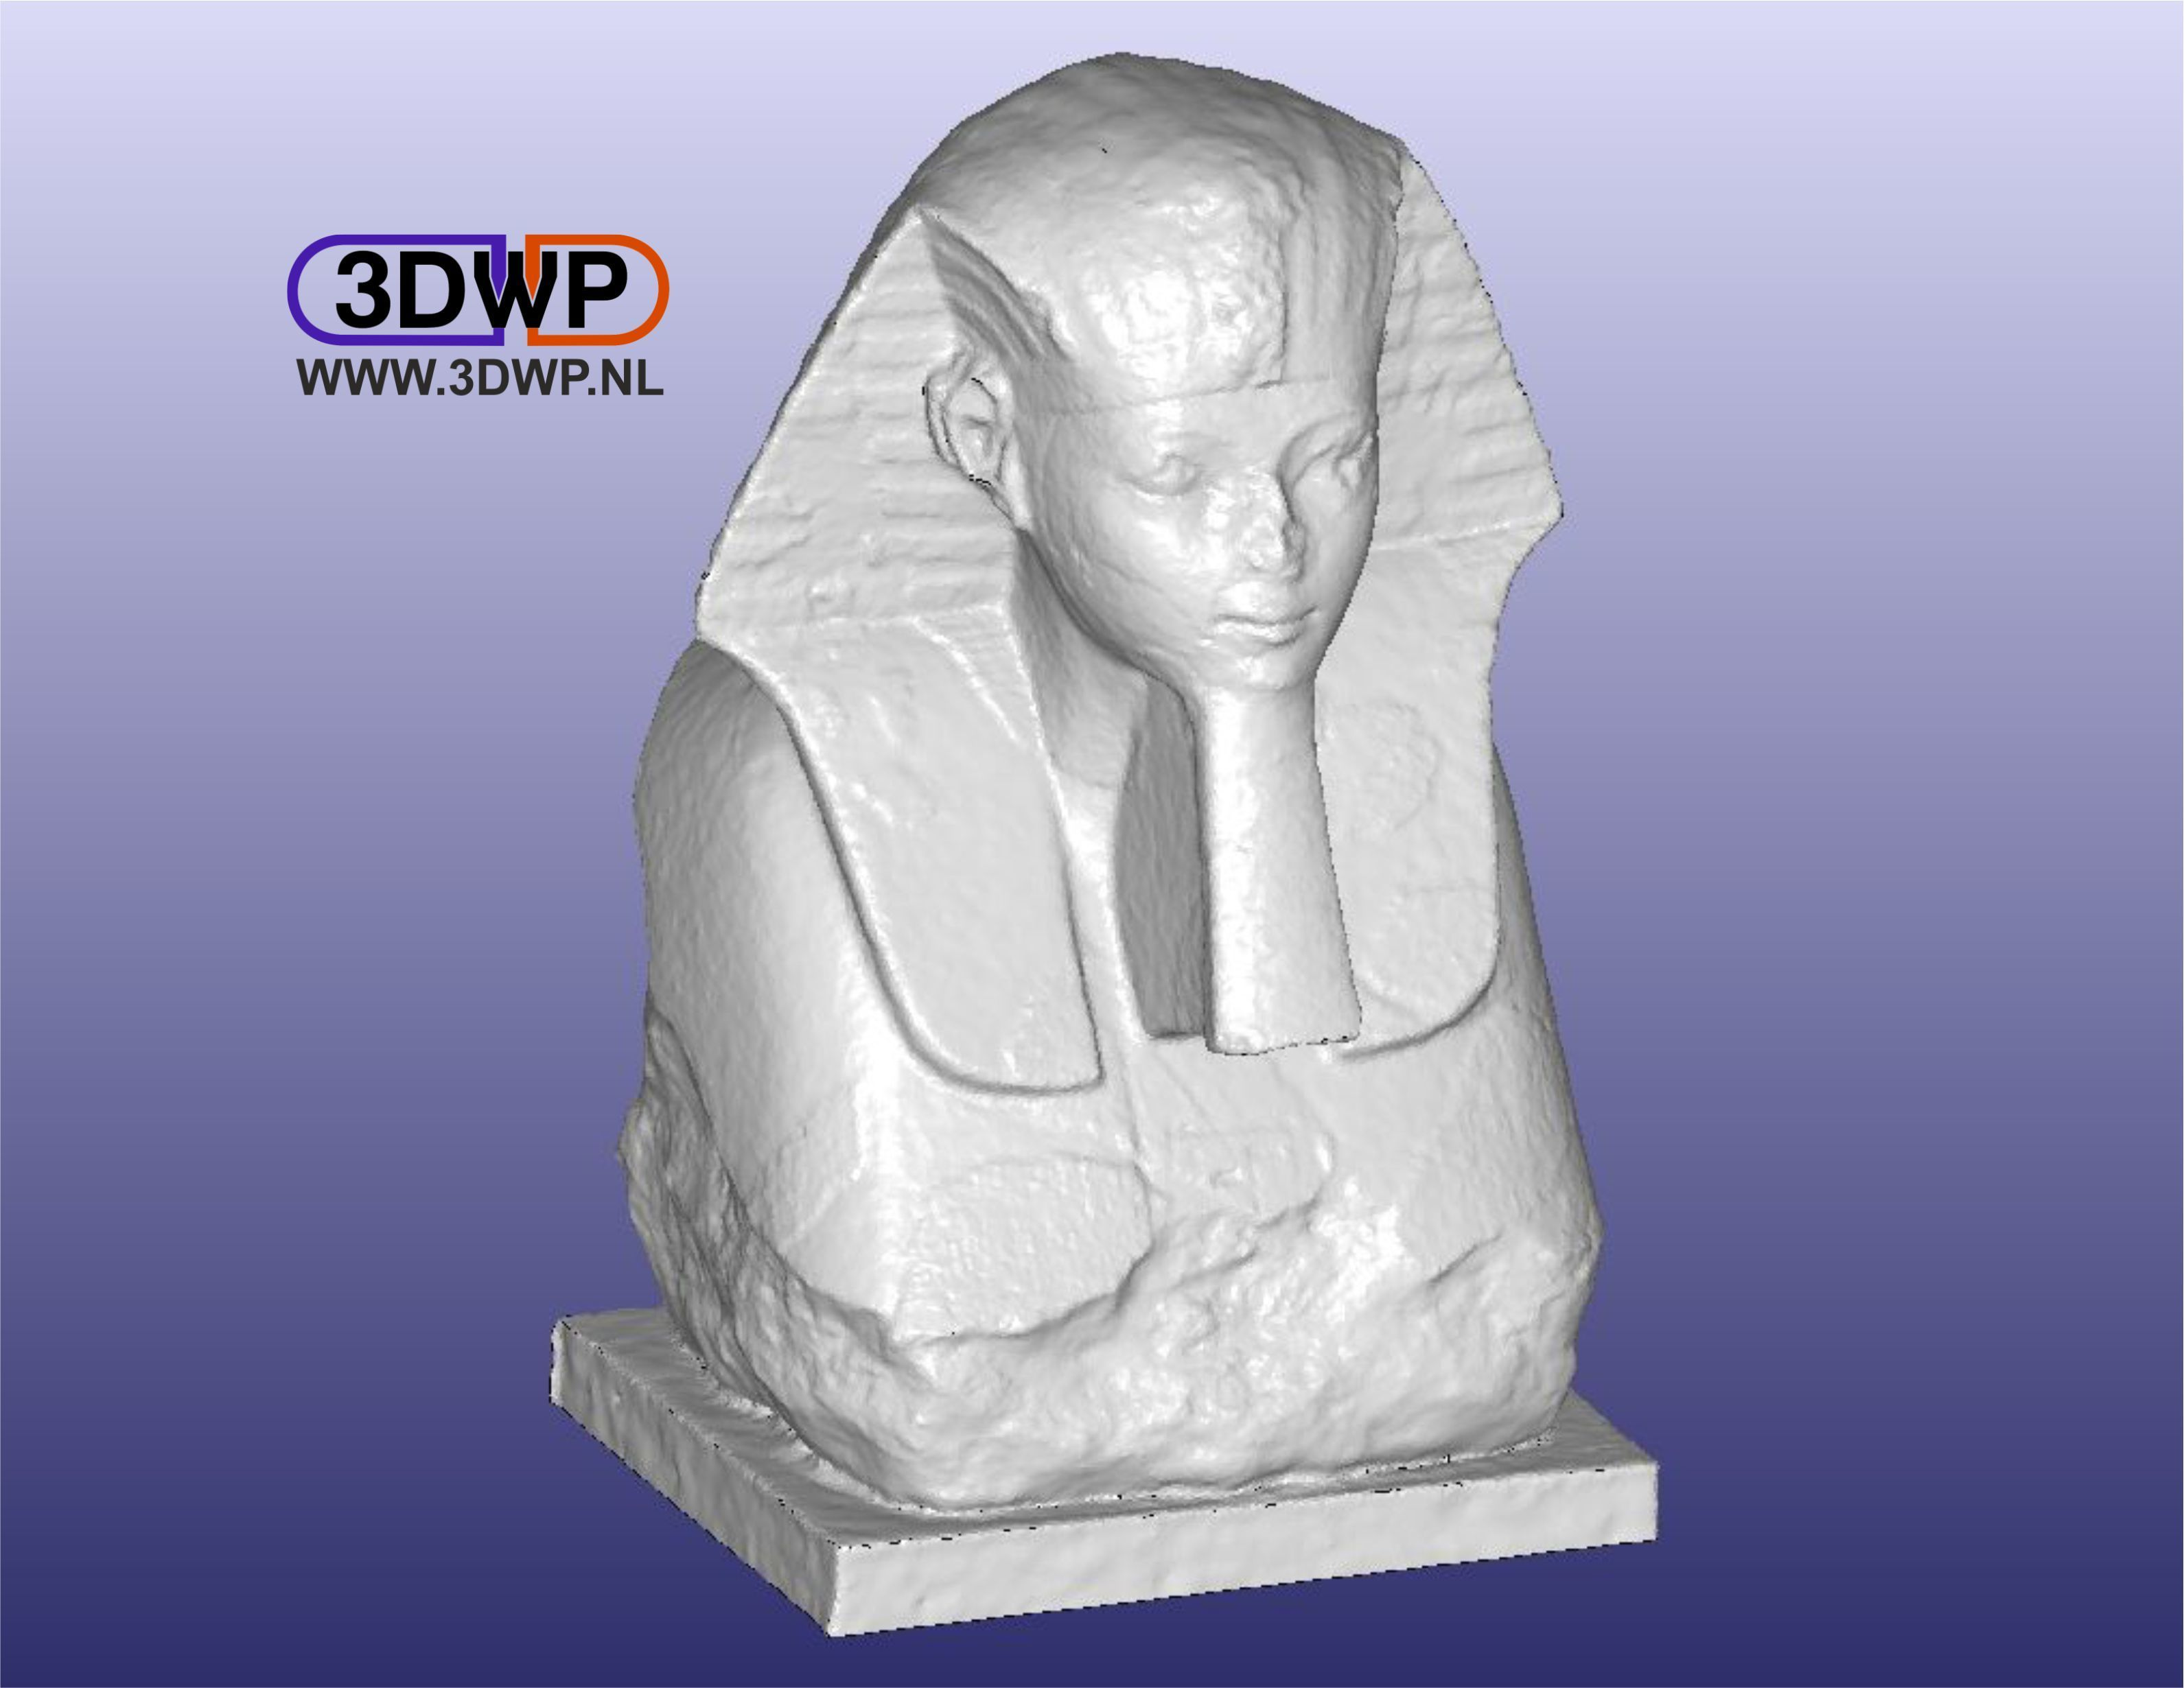 Sphinx1.JPG Download free STL file Sphinx Of Hatshepsut 3D Scan • 3D printer object, 3DWP